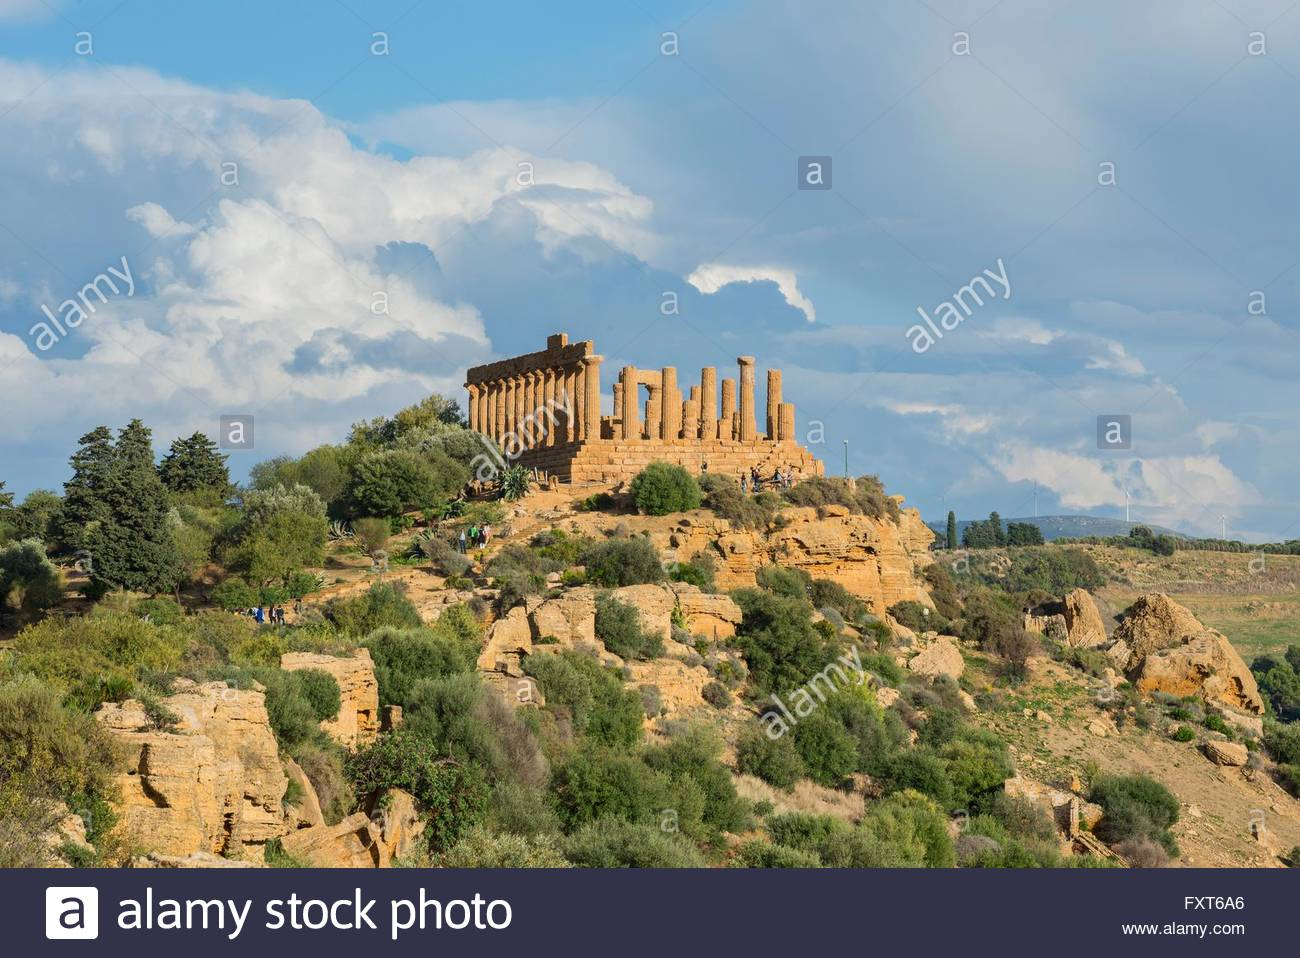 Temple of Juno on rugged hill, Valley of the Temples, Agrigento, Sicily, Italy - Stock Image